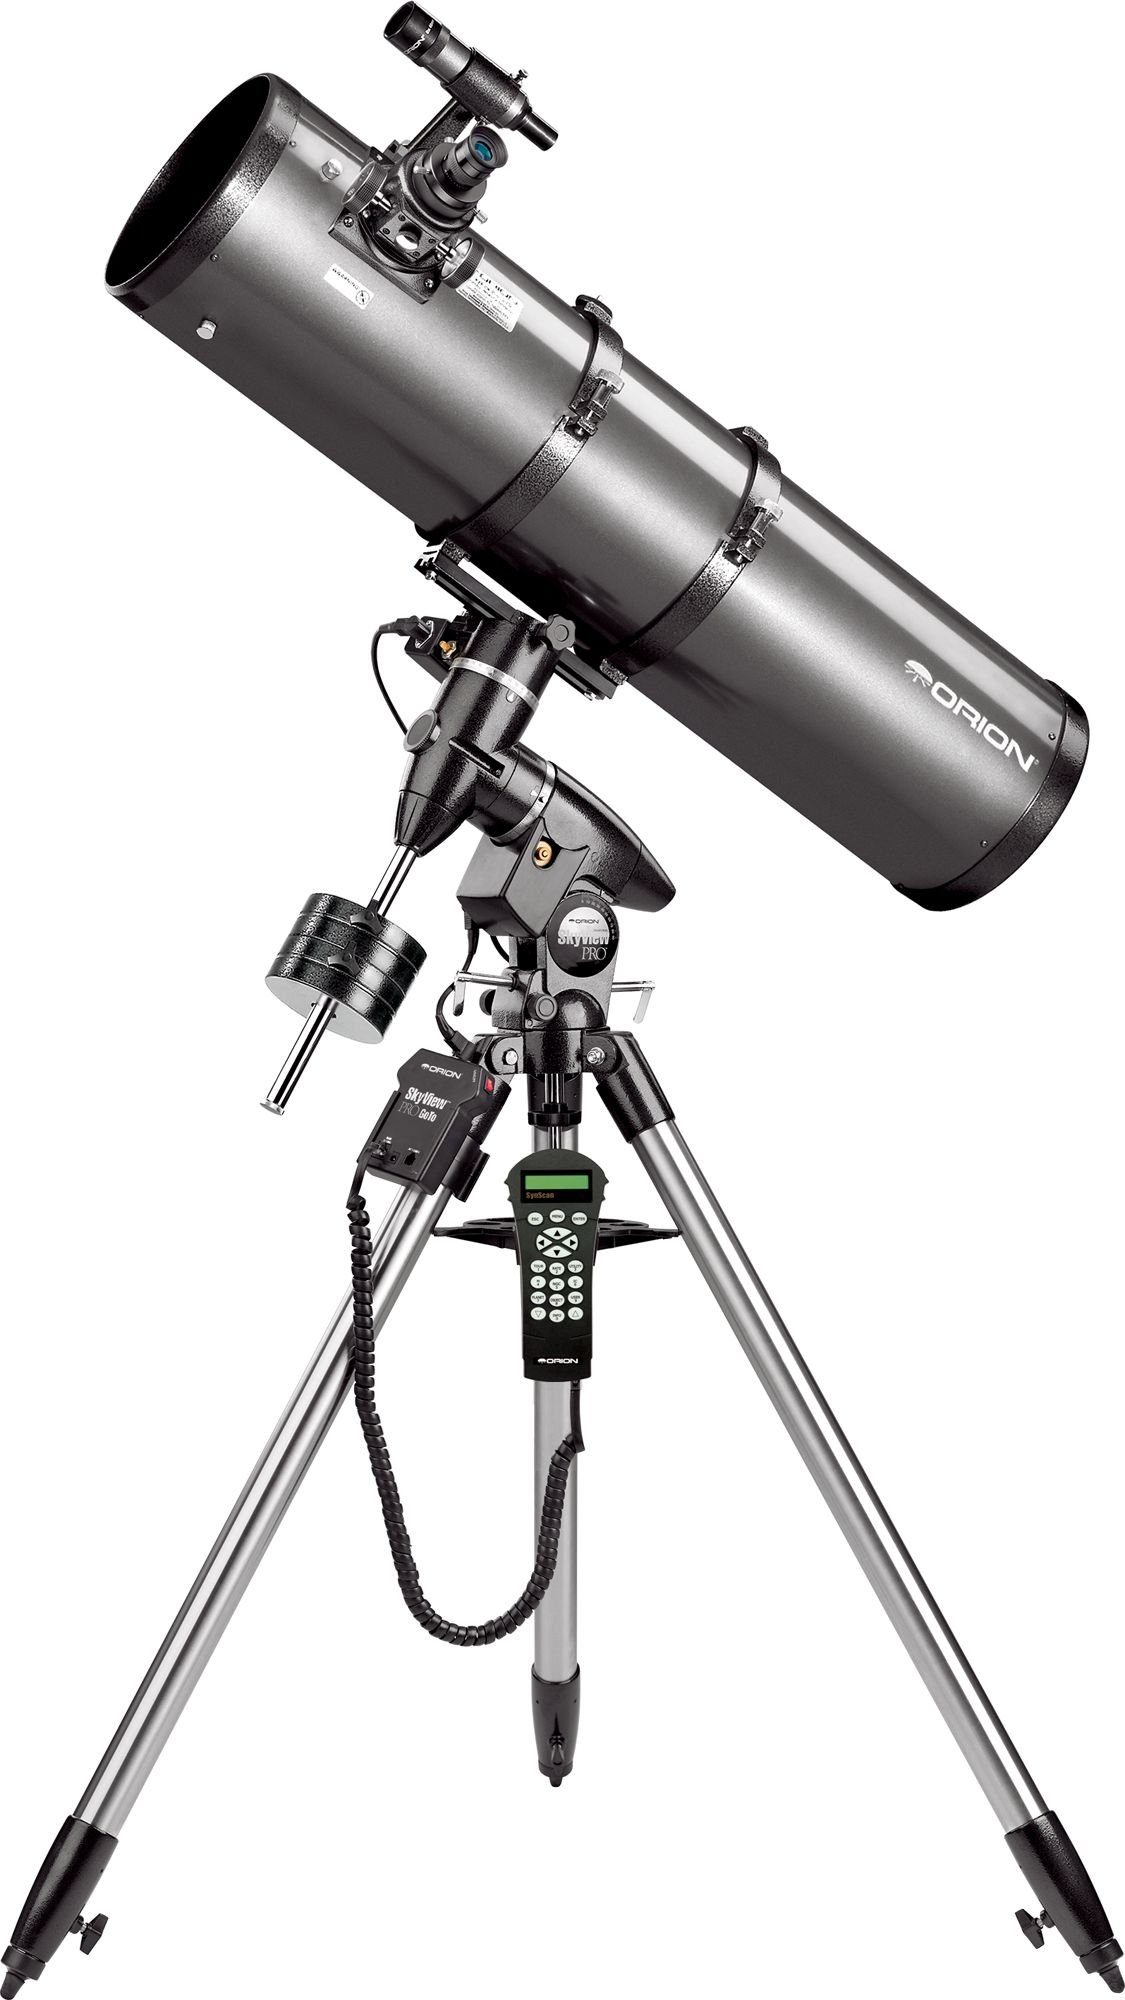 Orion Skyview Pro 8 GoTo Reflector Telescope by Orion